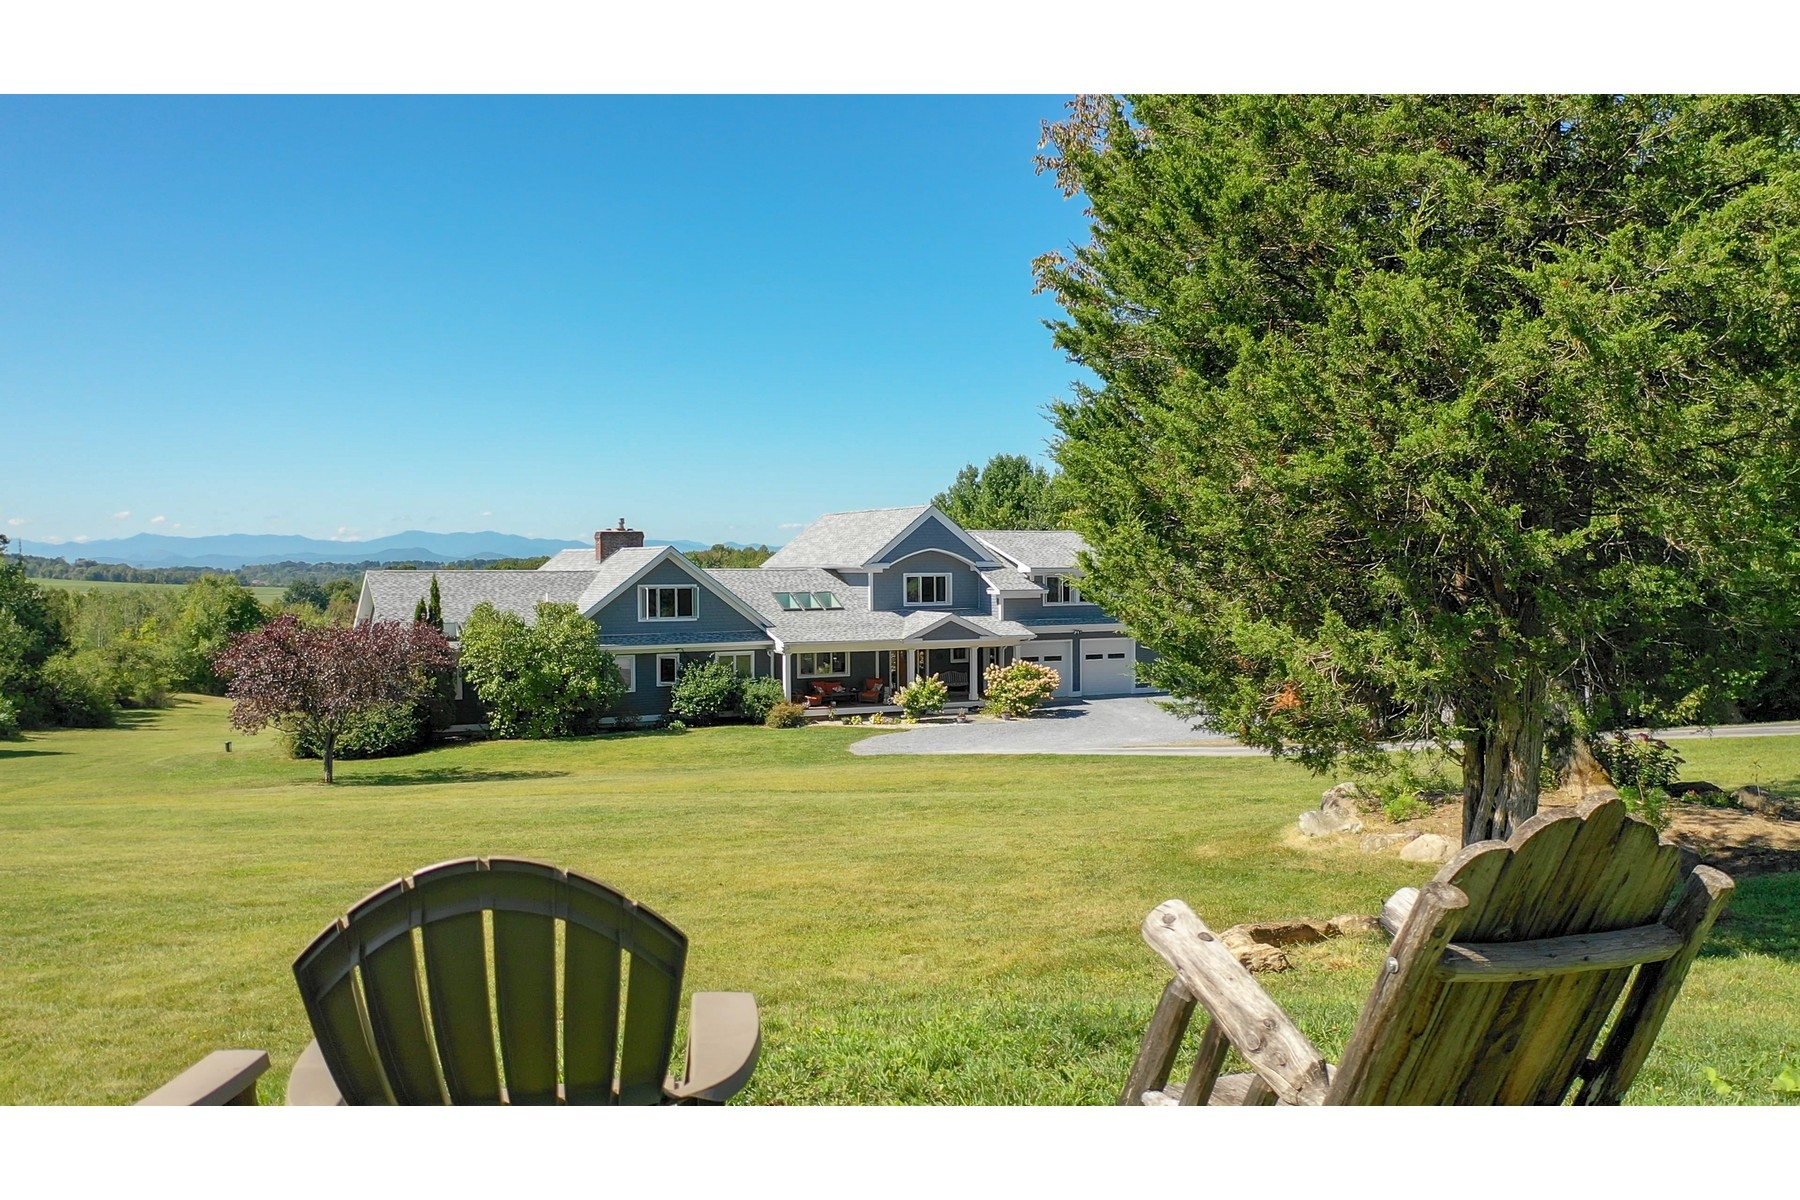 single family homes for Sale at 335 Upper Meadow Lane, Charlotte 335 Upper Meadow Ln Charlotte, Vermont 05445 United States